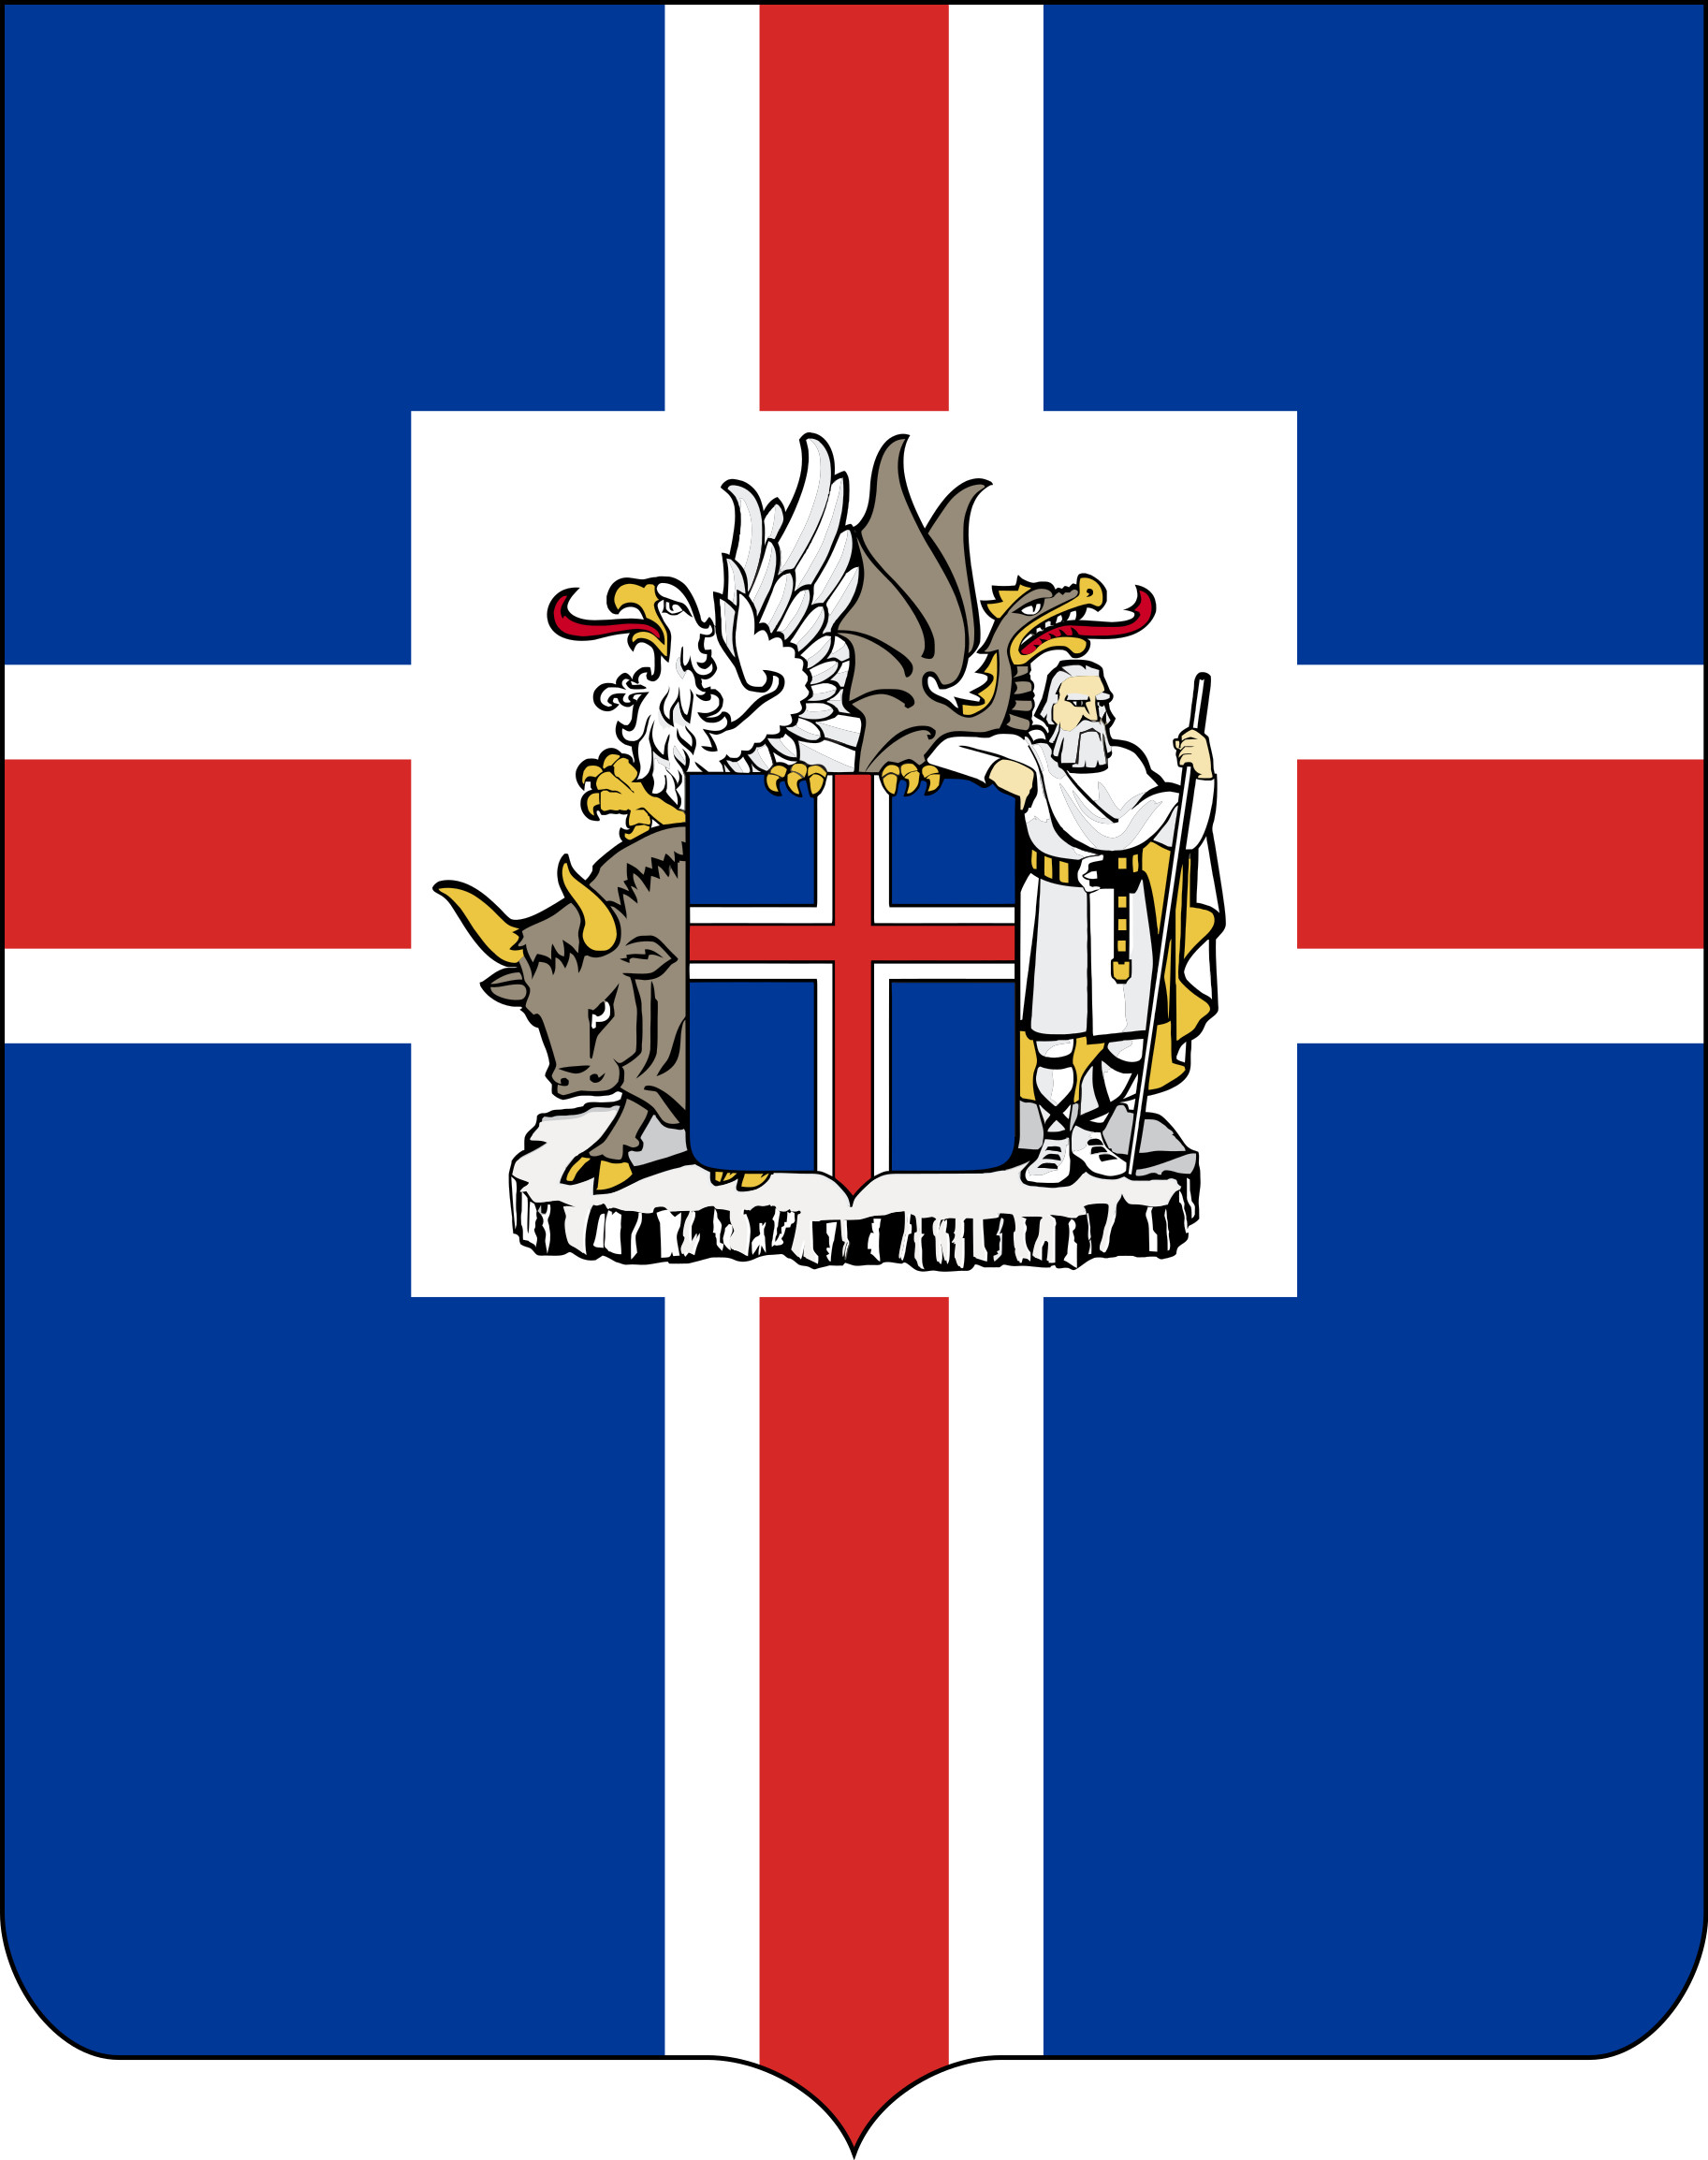 Coat of arms of the President of Iceland